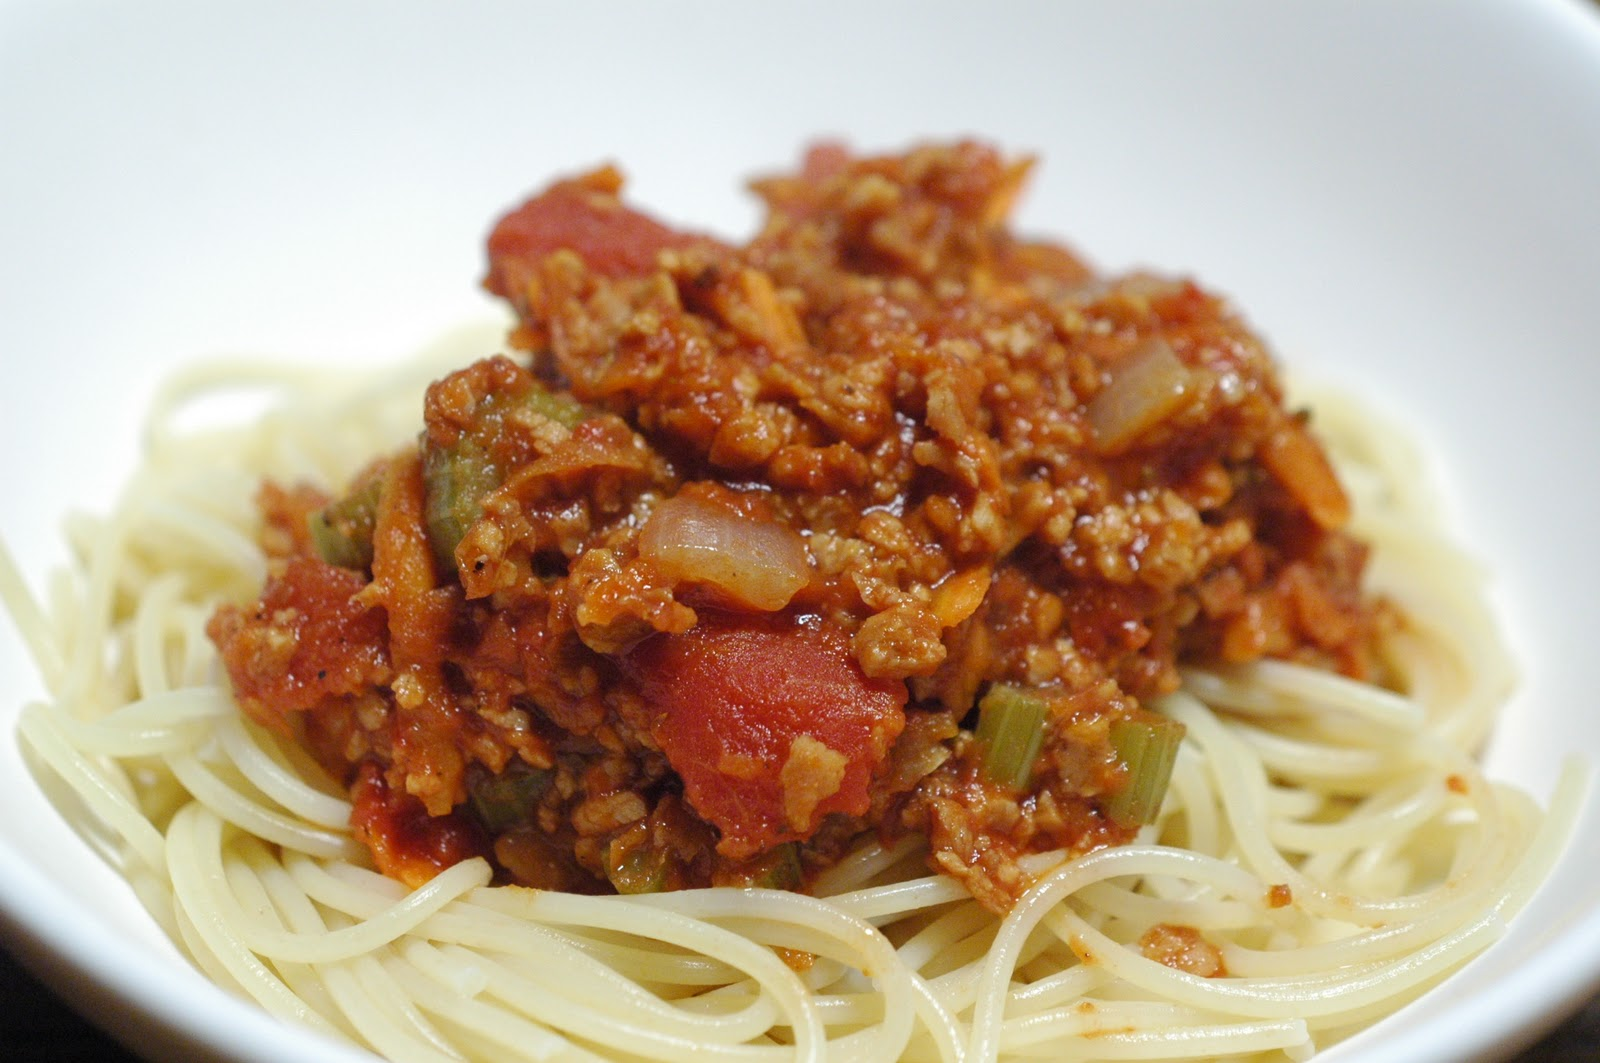 The Everyday Vegetarian: The best vegan spaghetti bolognese ever